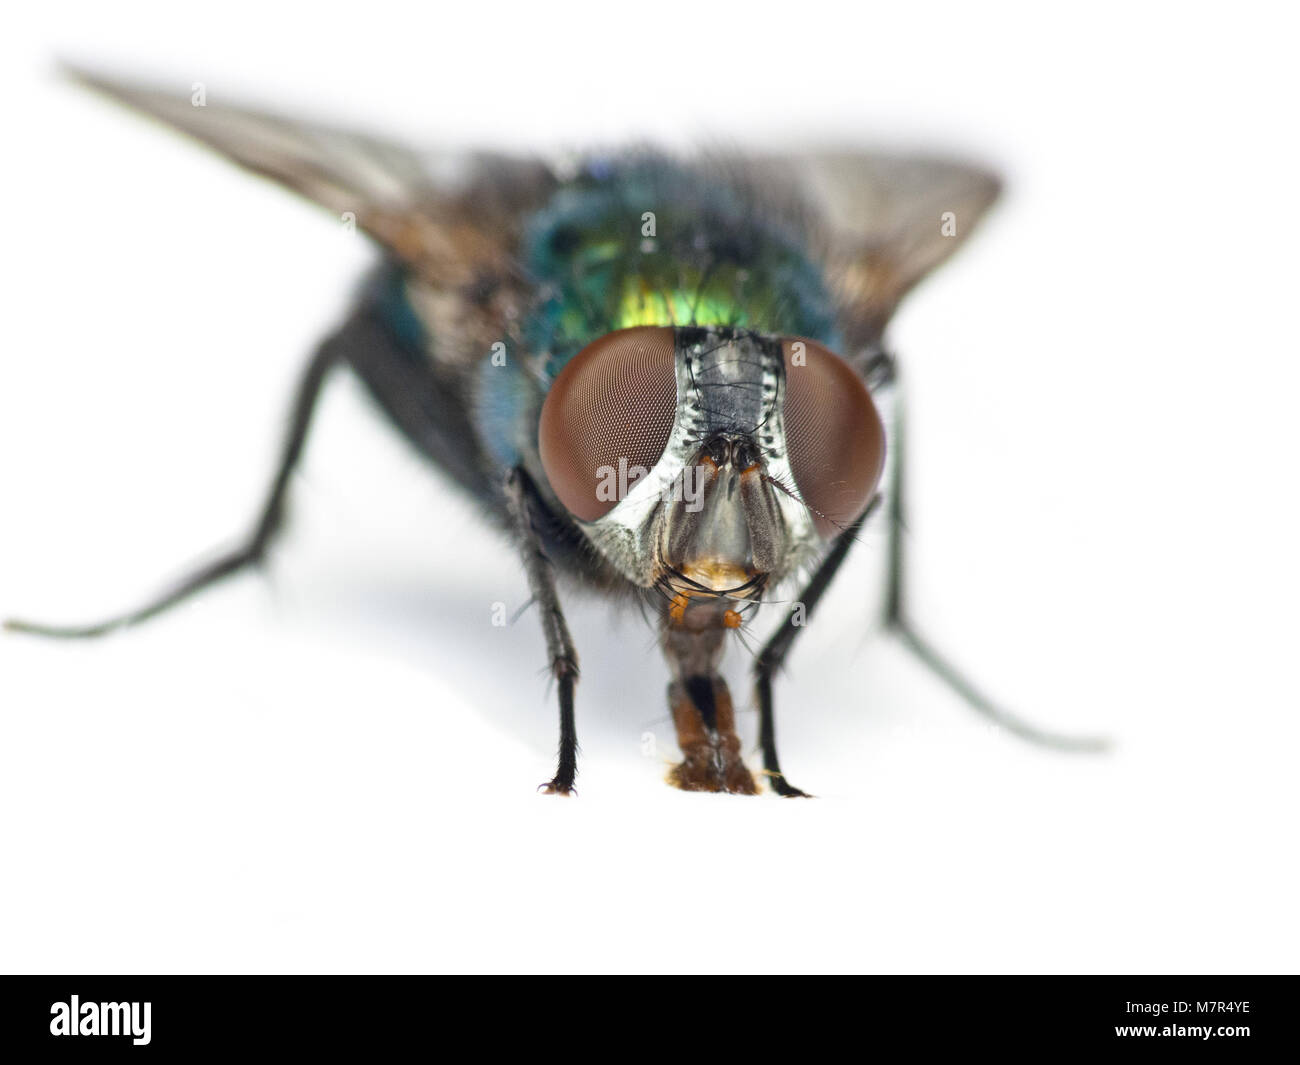 A green bottle fly isolated on a white background - Stock Image